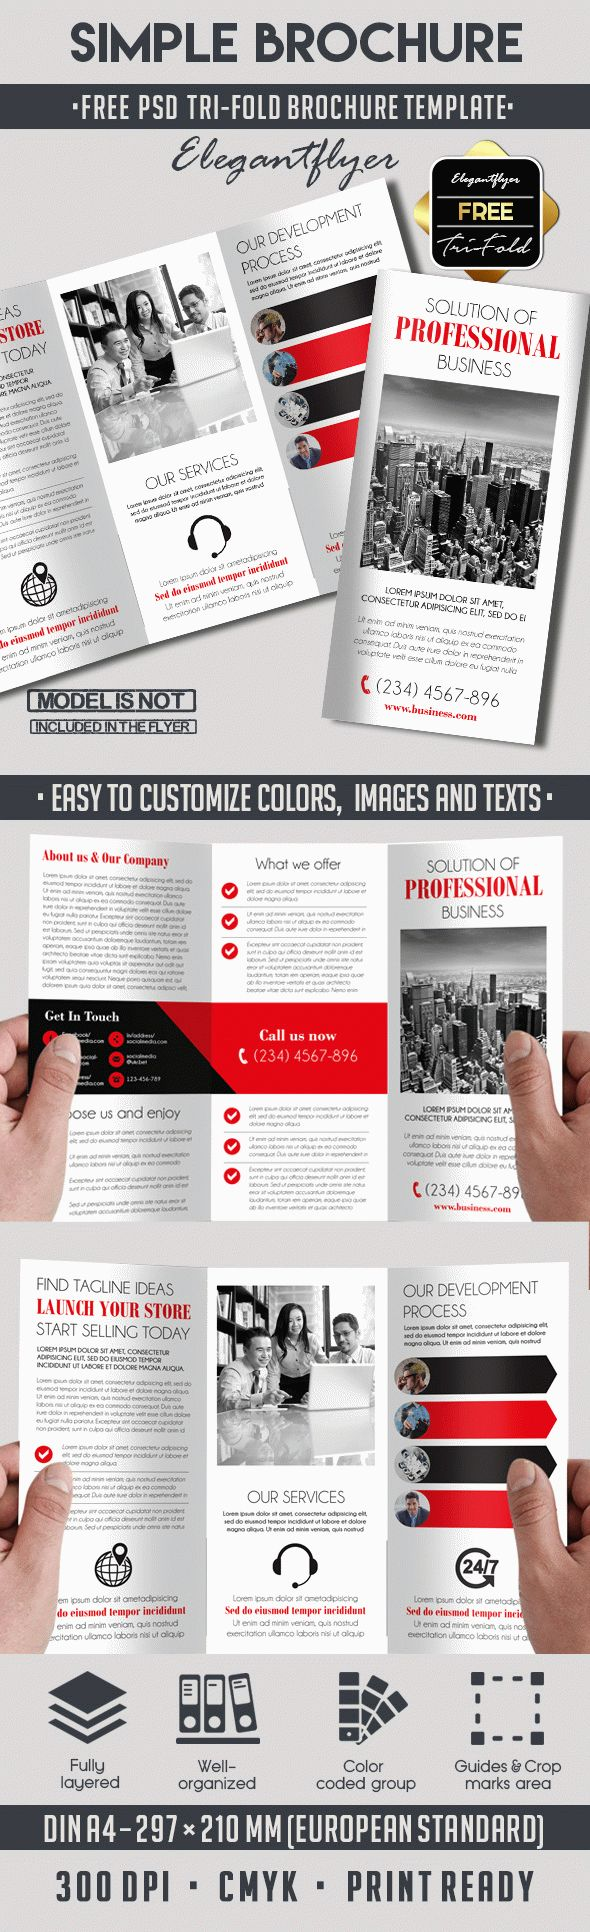 Simple free tri fold psd brochure template by elegantflyer for Free psd brochure template